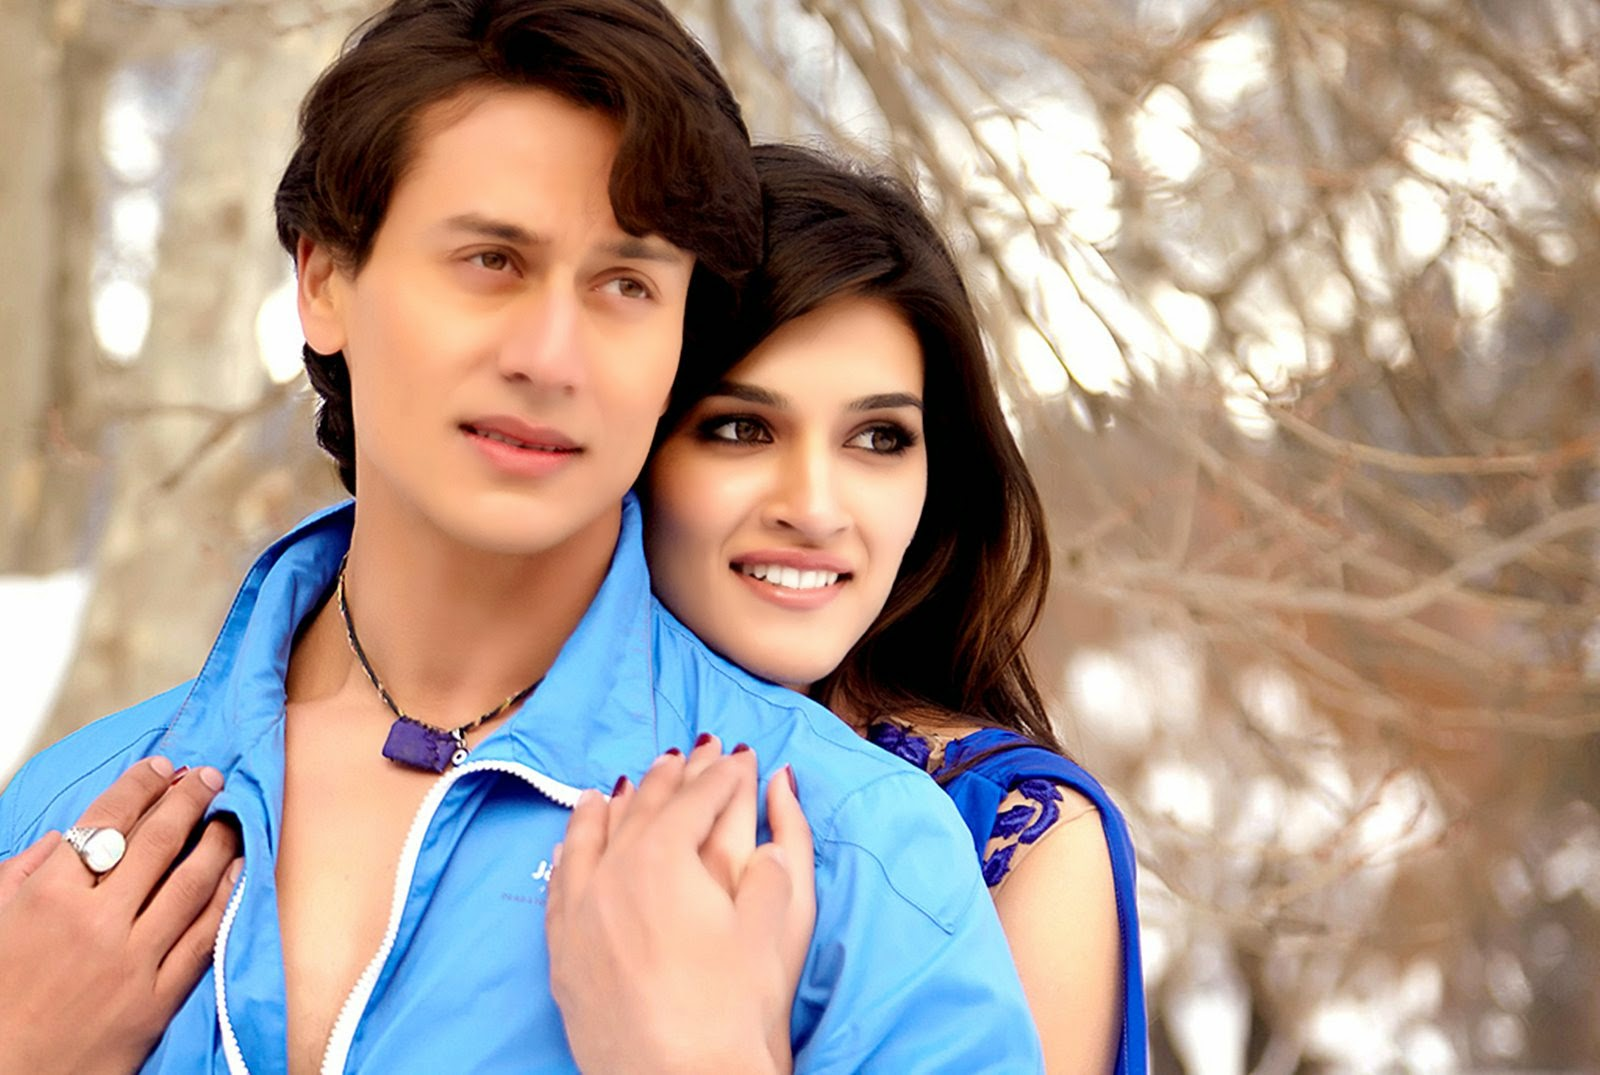 tiger shroff & kriti sanon wallpaper download | every couples hd